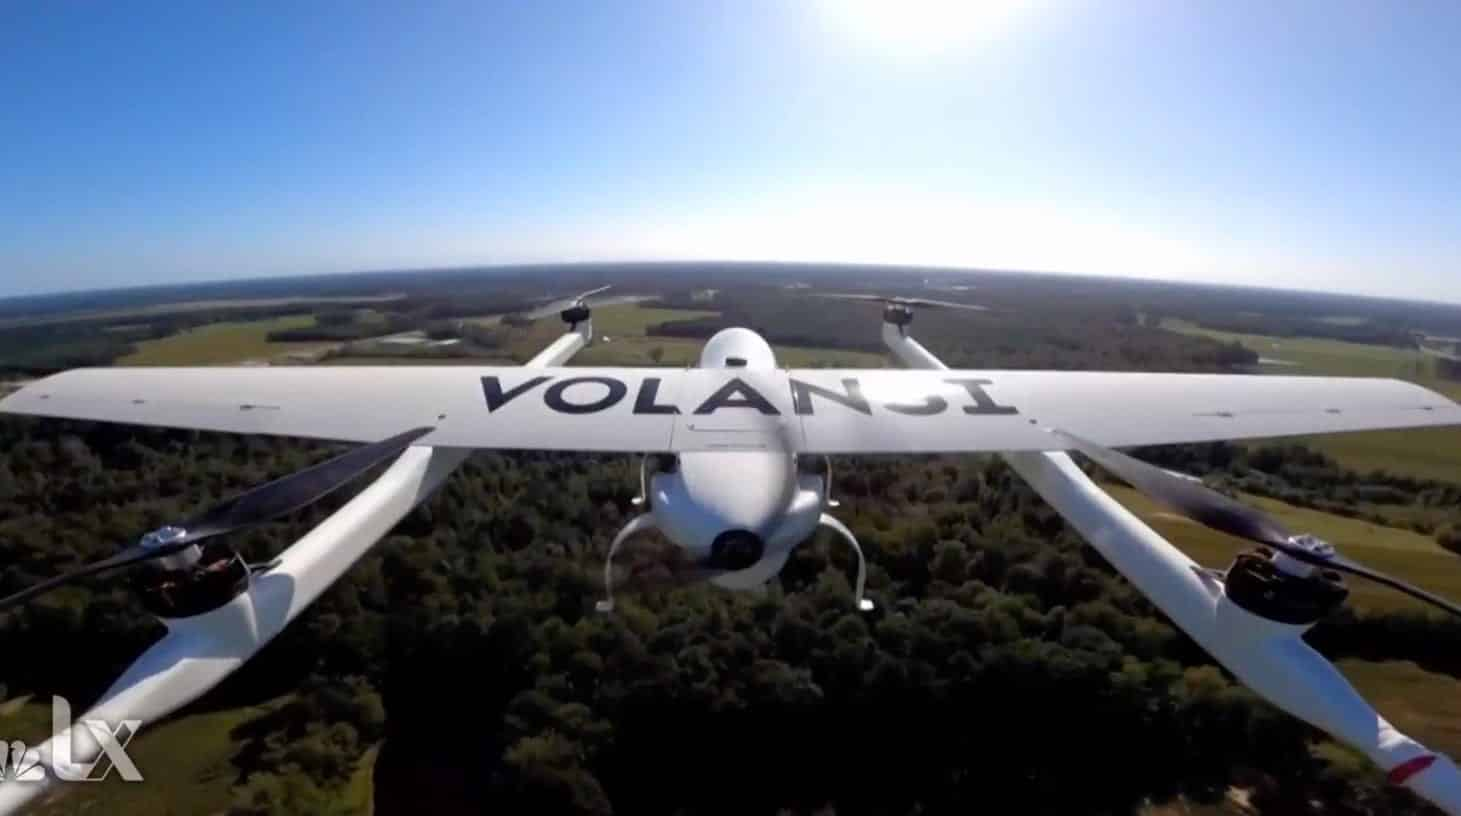 Delivering COVID-19 vaccines by drone, Volansi's Hannan Parvizian explains